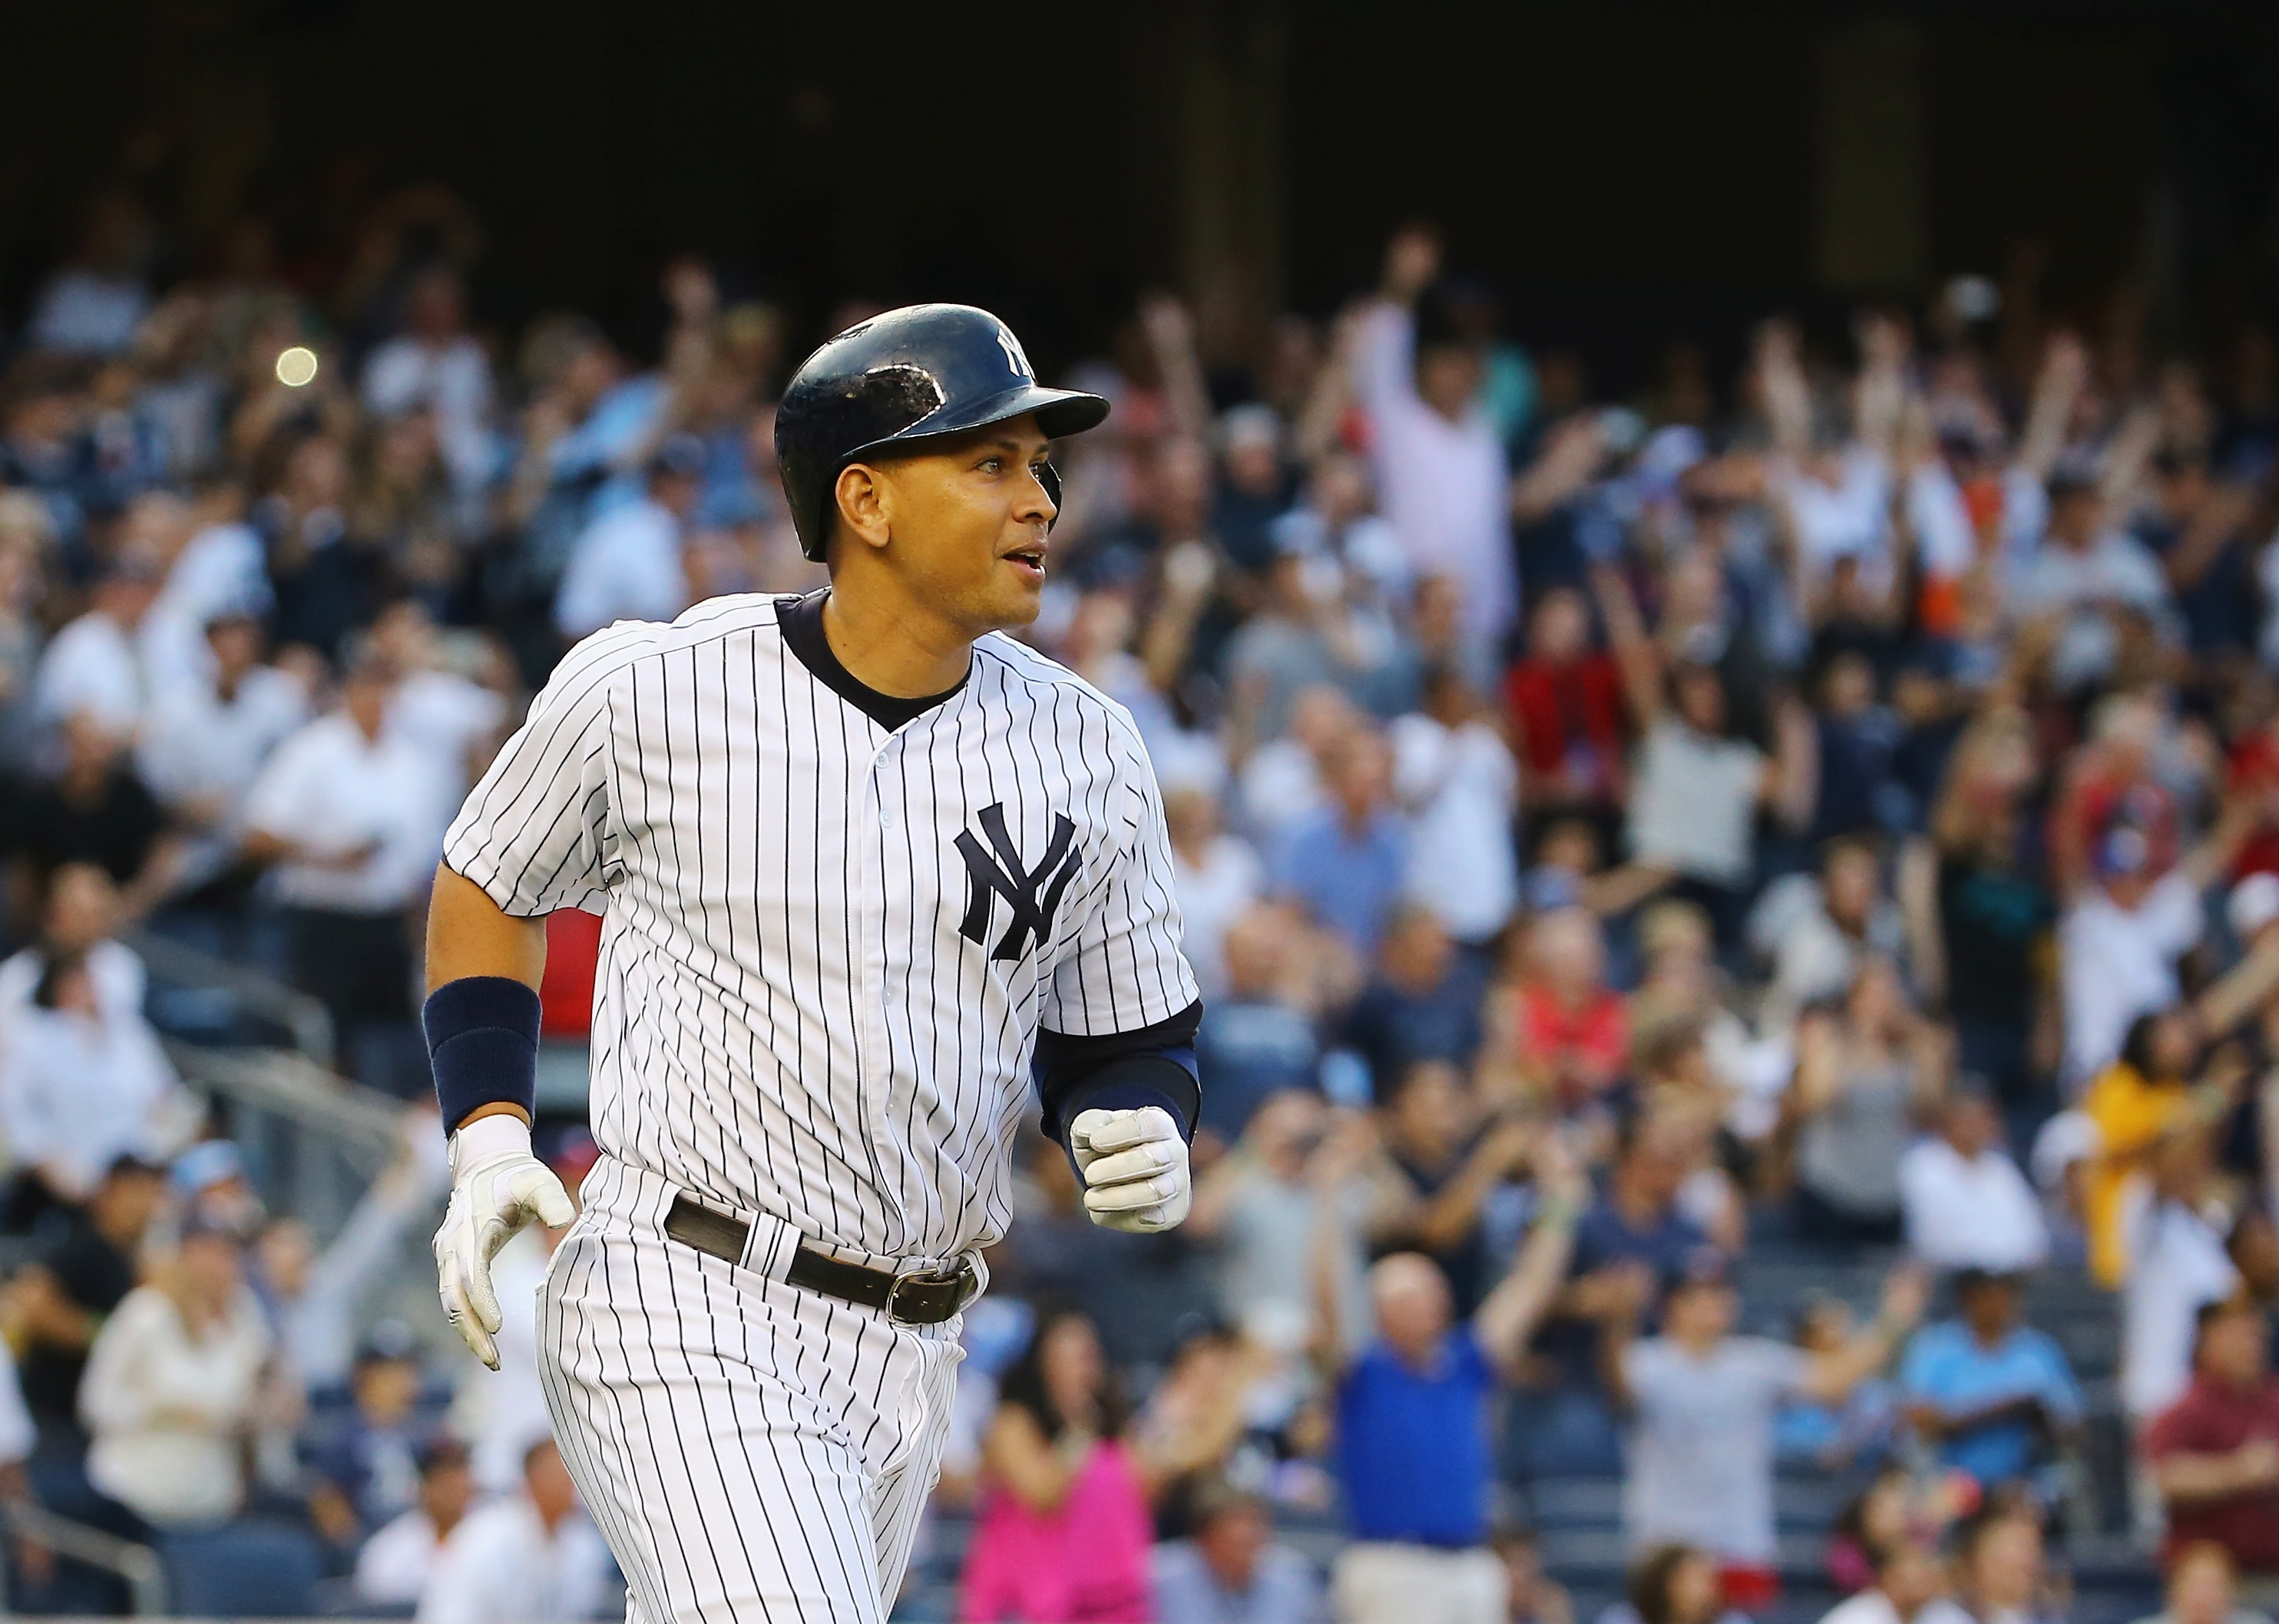 Alex Rodriguez of the Yankees didn't have to run hard after getting his 3,000th hit. It was just a matter of using his home trot as he went deep on Justin Verlander of the Tigers Friday night.